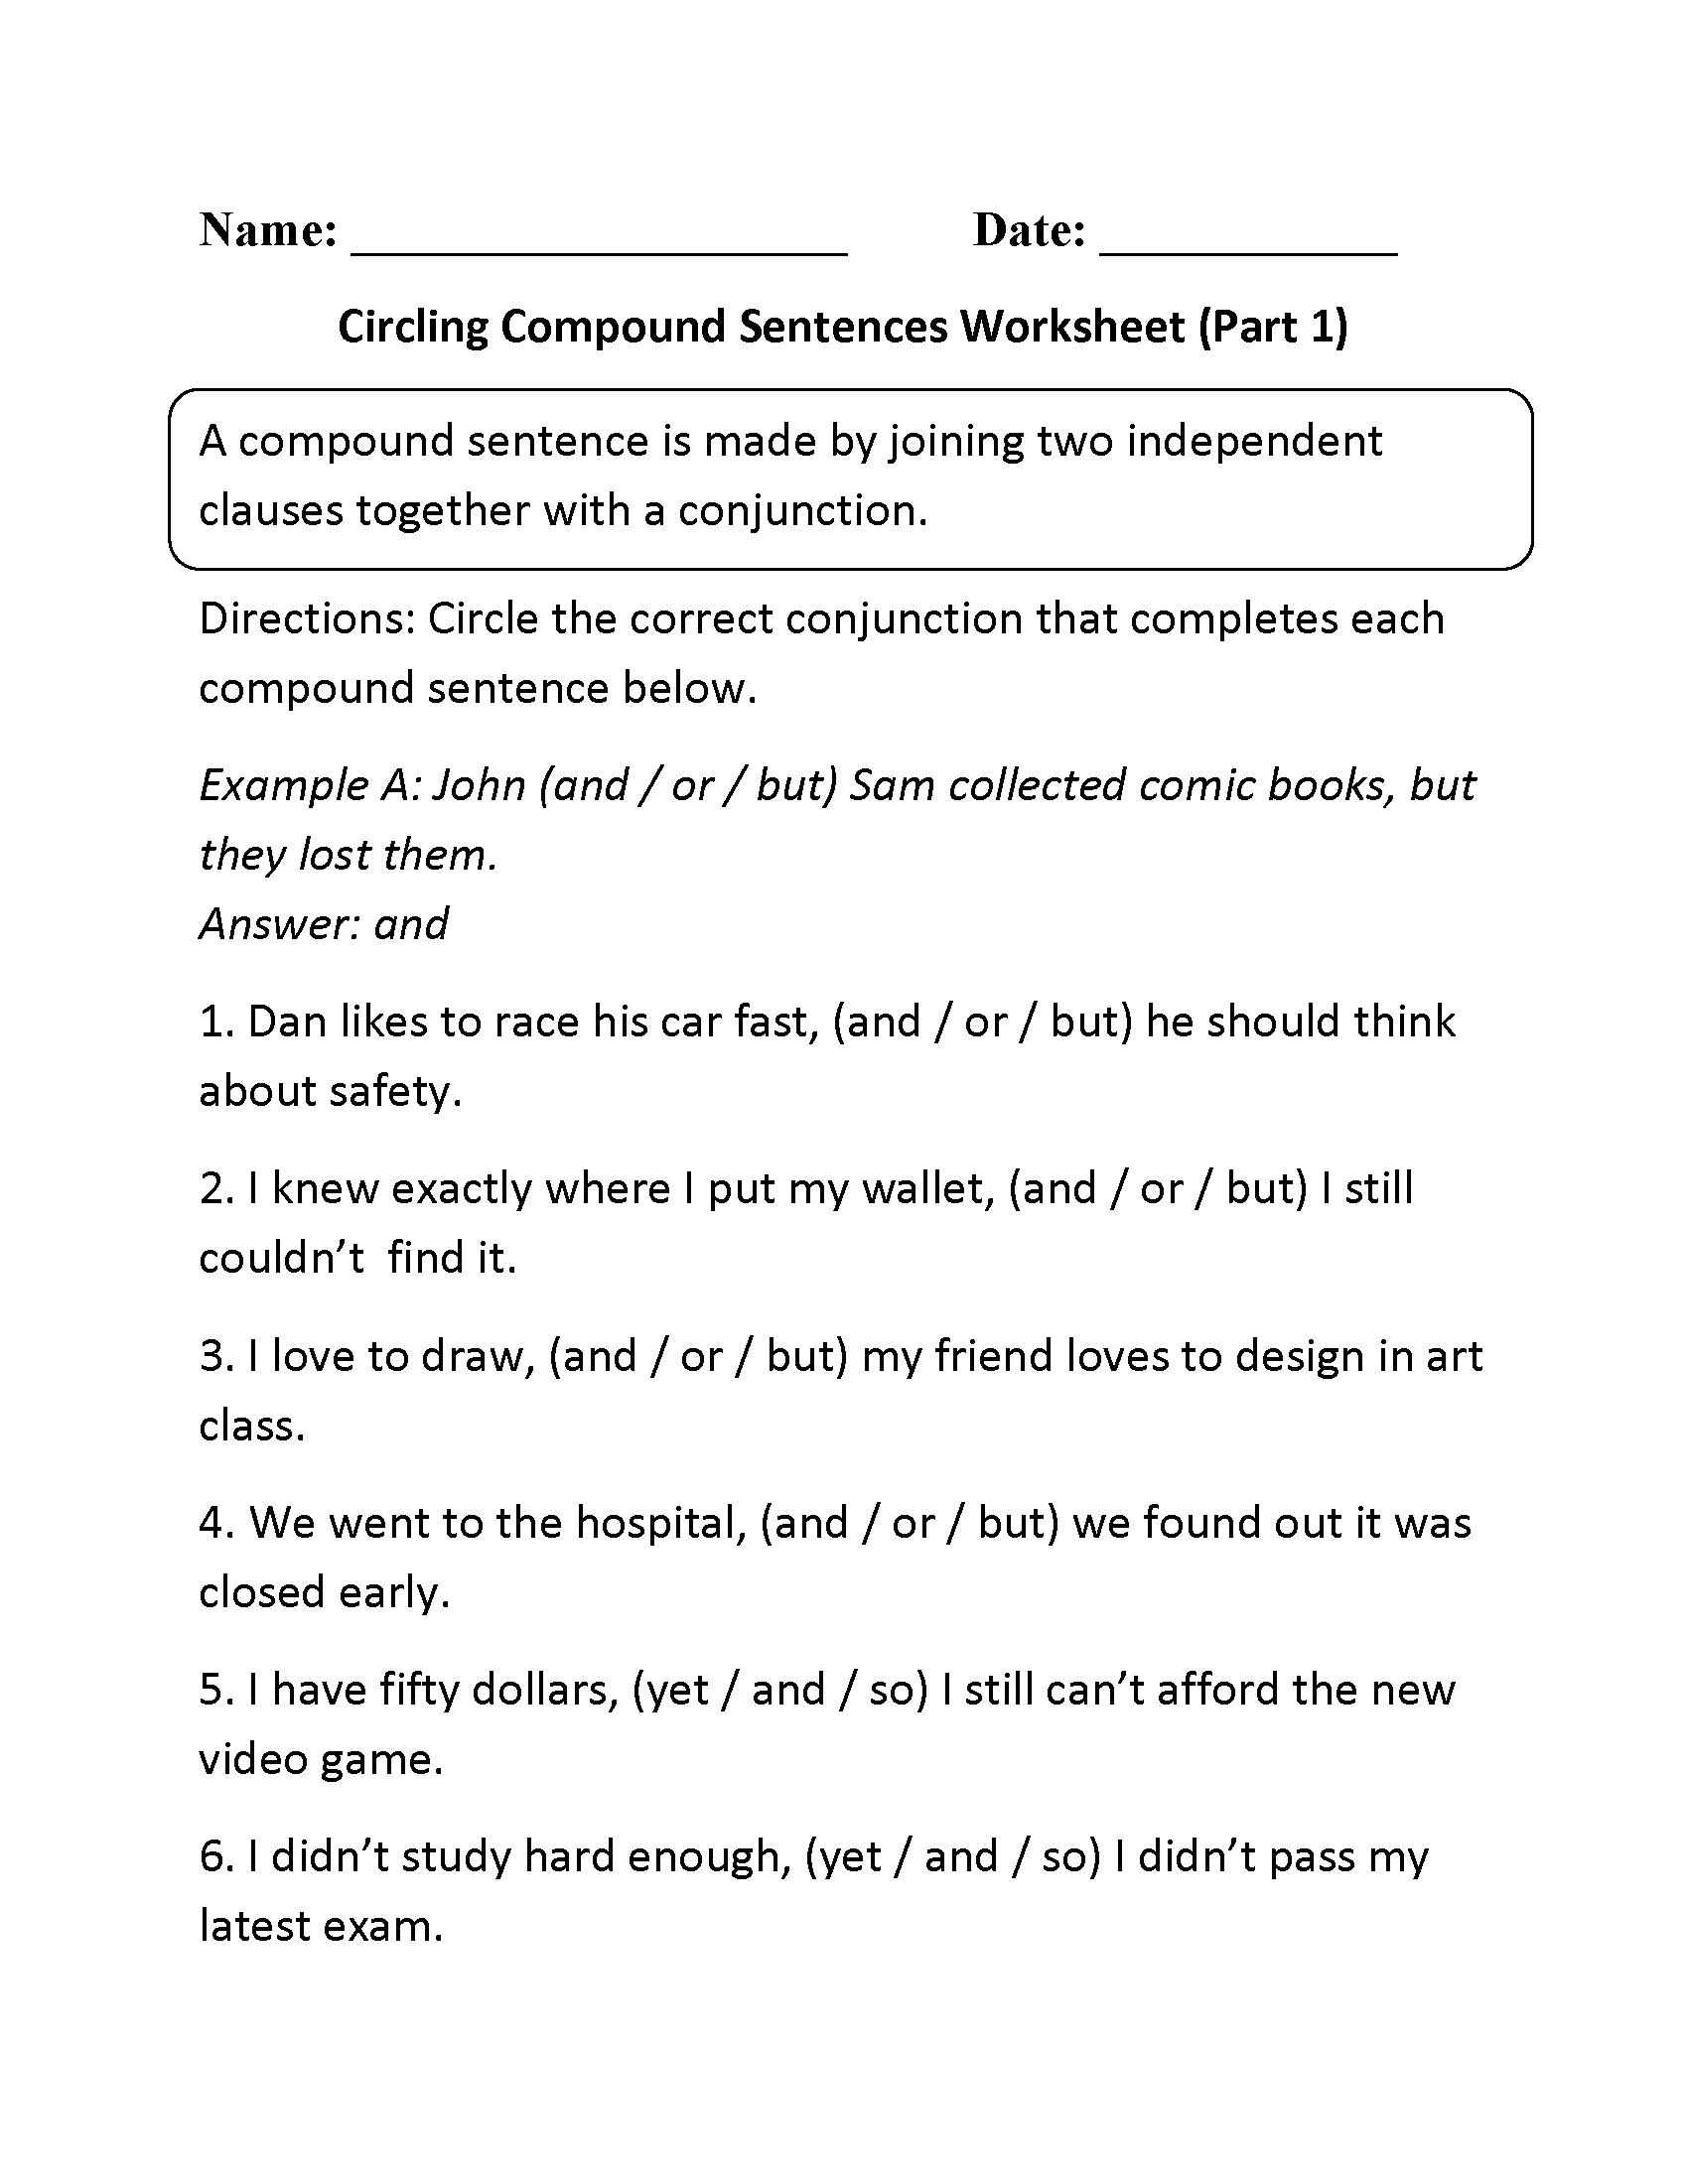 Worksheet Compound Sentence Worksheet compound sentences worksheets circling worksheet